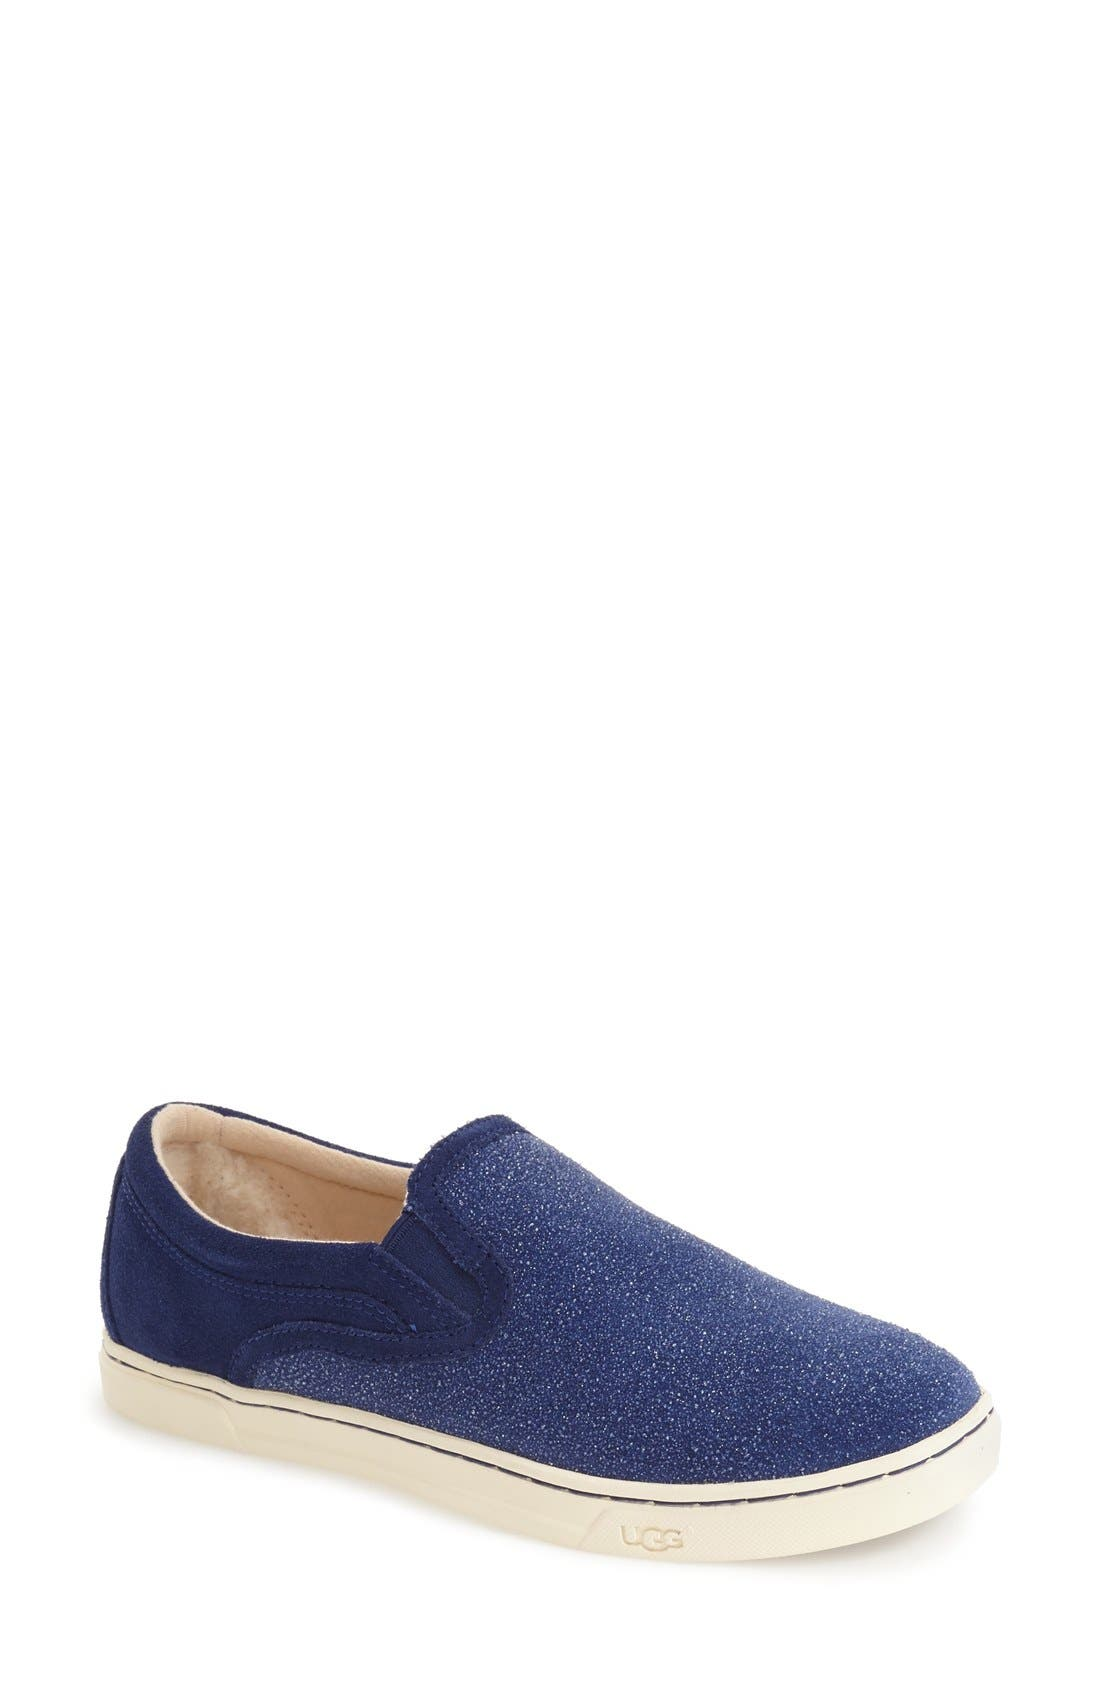 UGG® Fierce Slip-On Sneaker